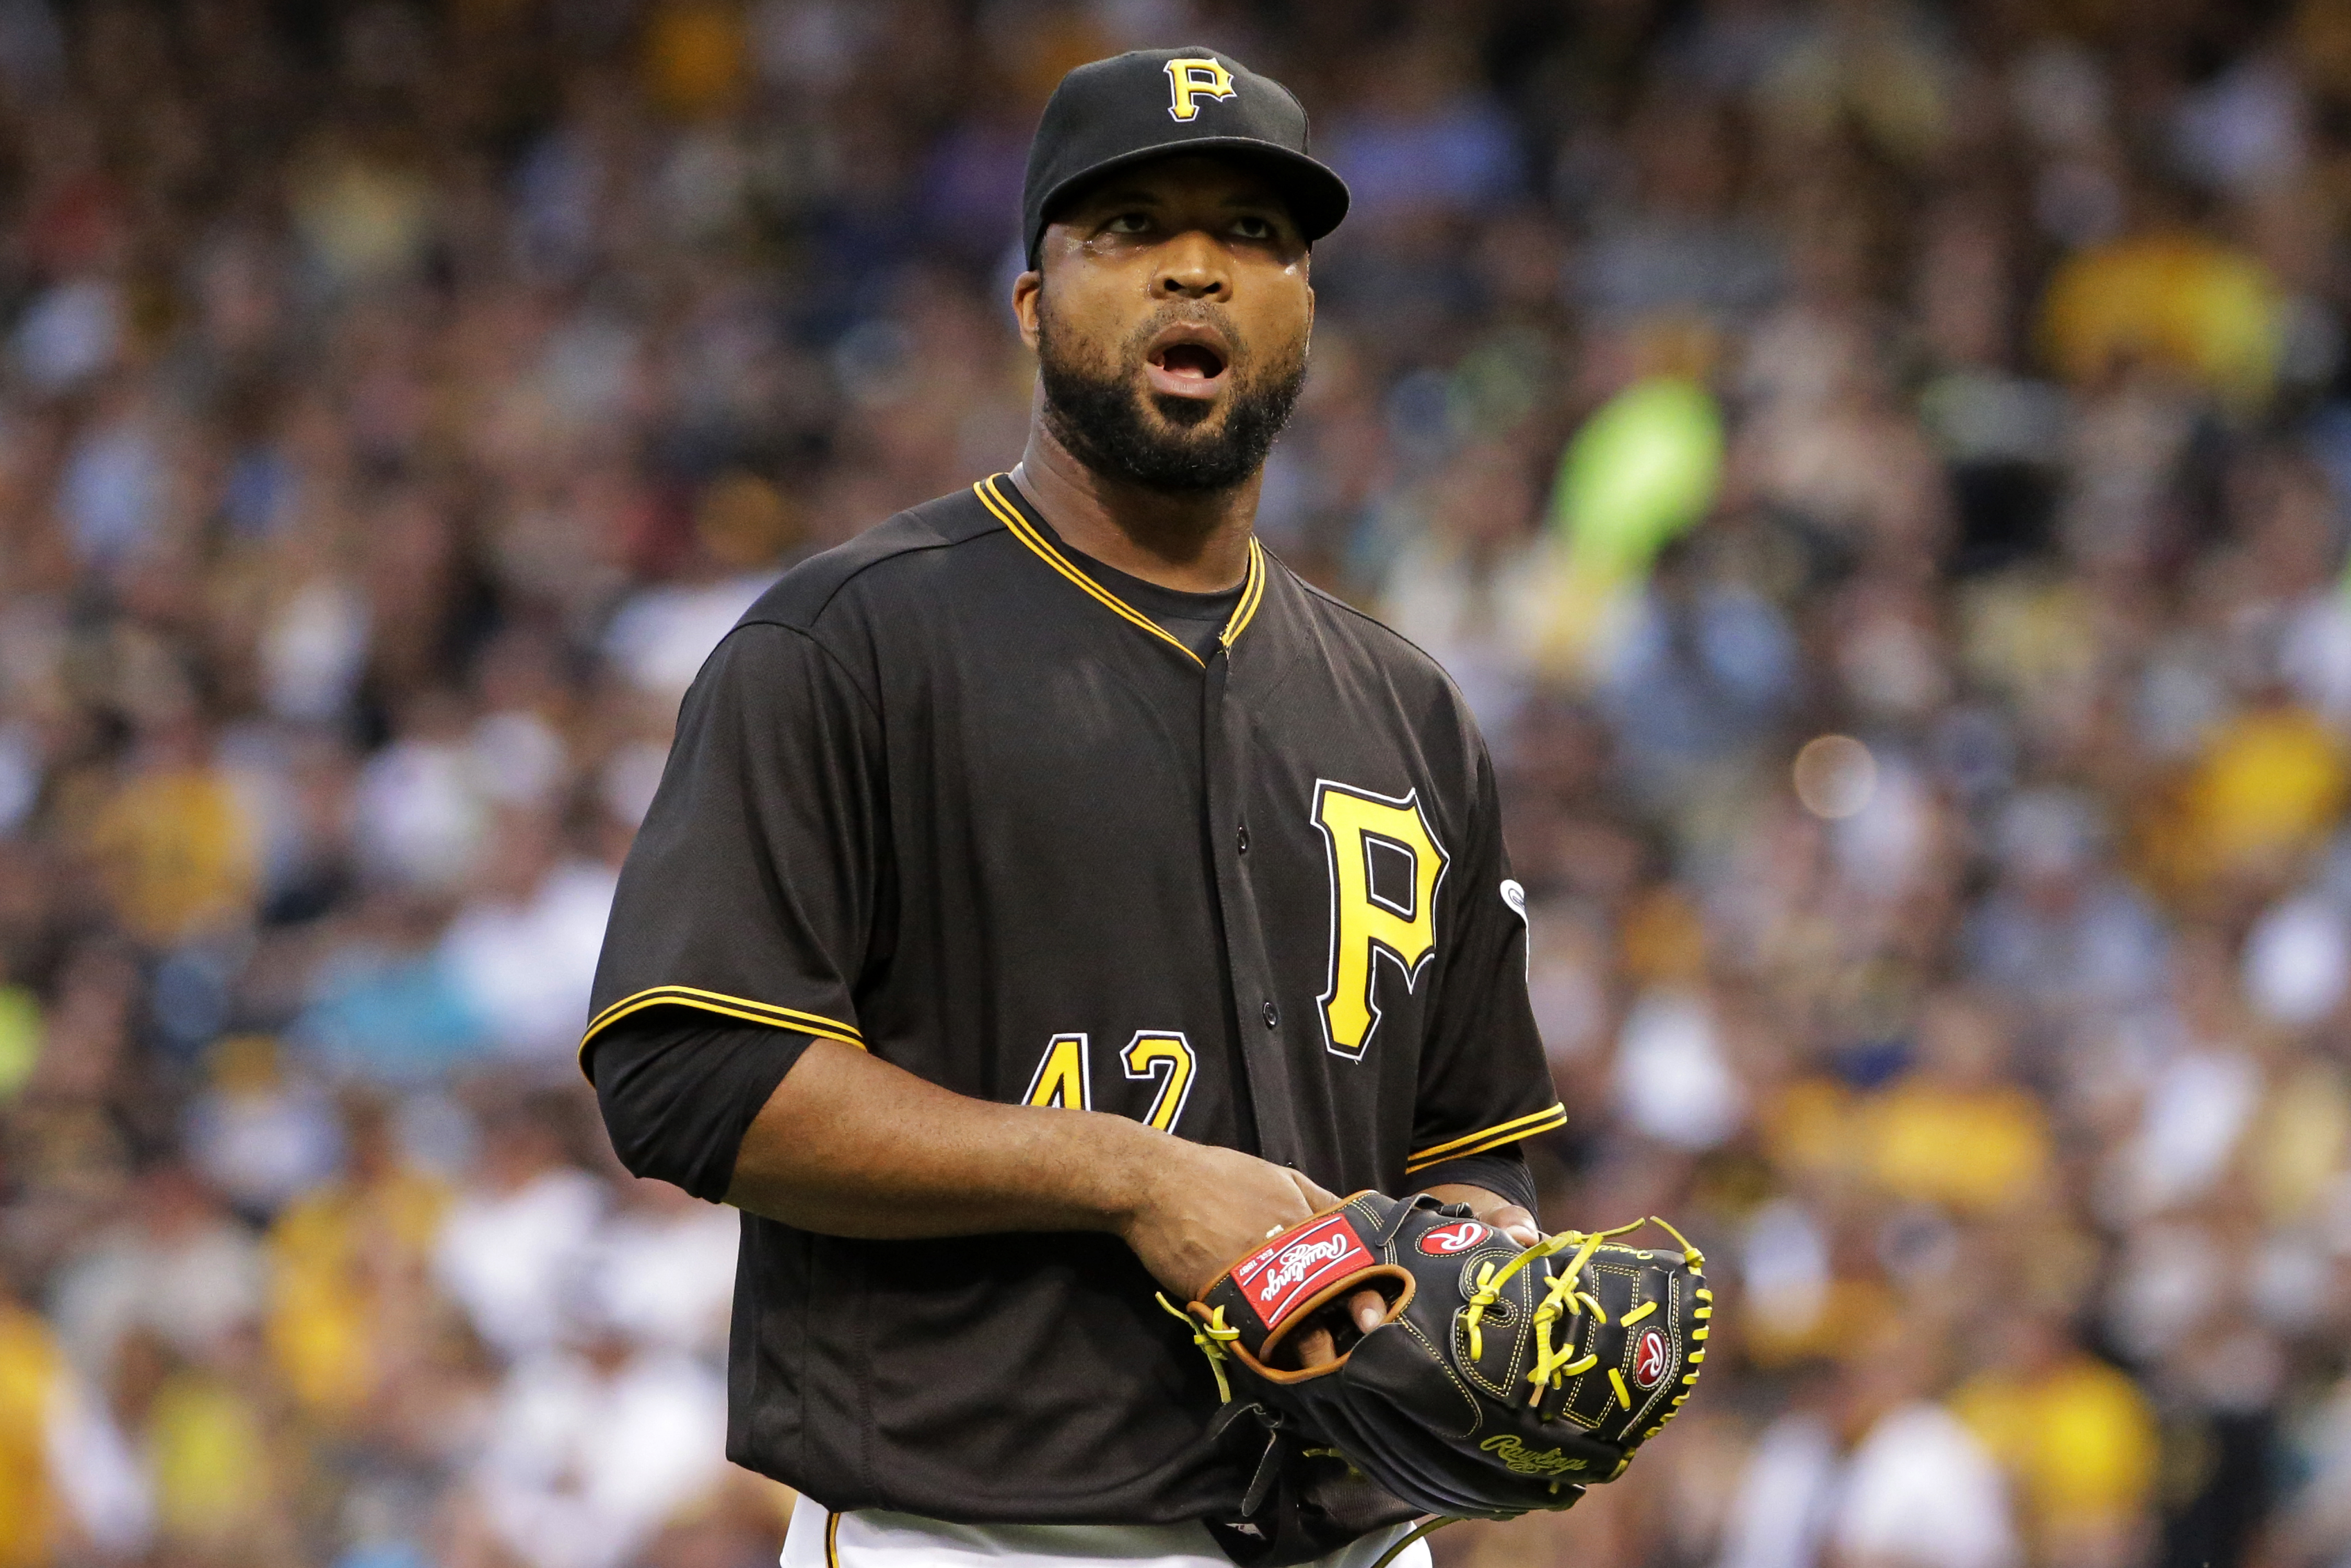 Pittsburgh Pirates starting pitcher Francisco Liriano walks to the dugout after being pulled by manager Clint Hurdle during the fourth inning of a baseball game against the Seattle Mariners in Pittsburgh, Tuesday, July 26, 2016. (AP Photo/Gene J. Puskar)